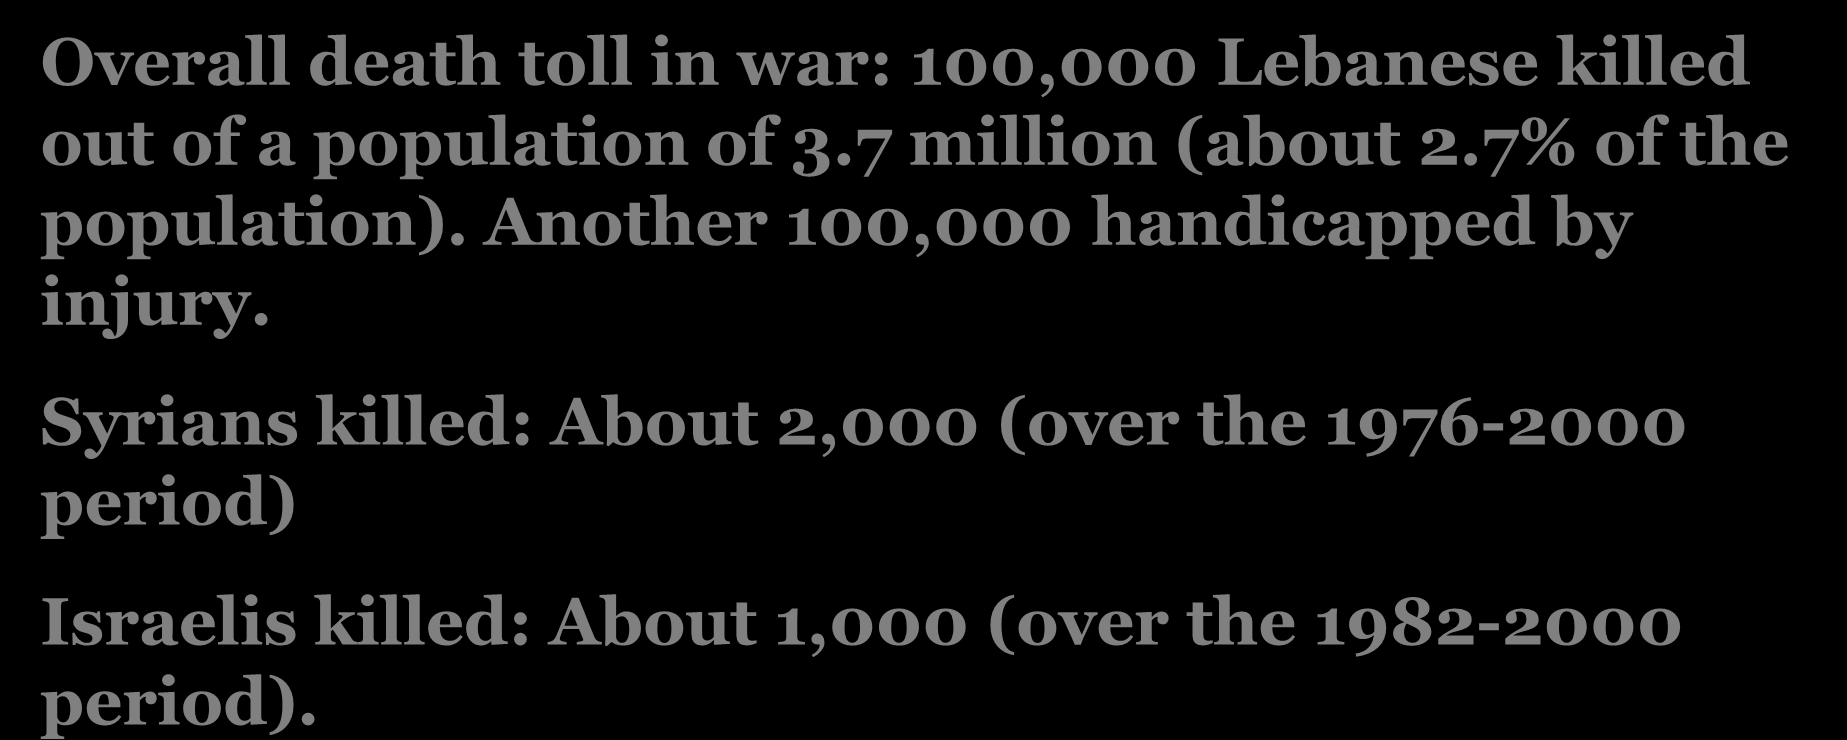 Overall death toll in war: 100,000 Lebanese killed out of a population of 3.7 million (about 2.7% of the population).